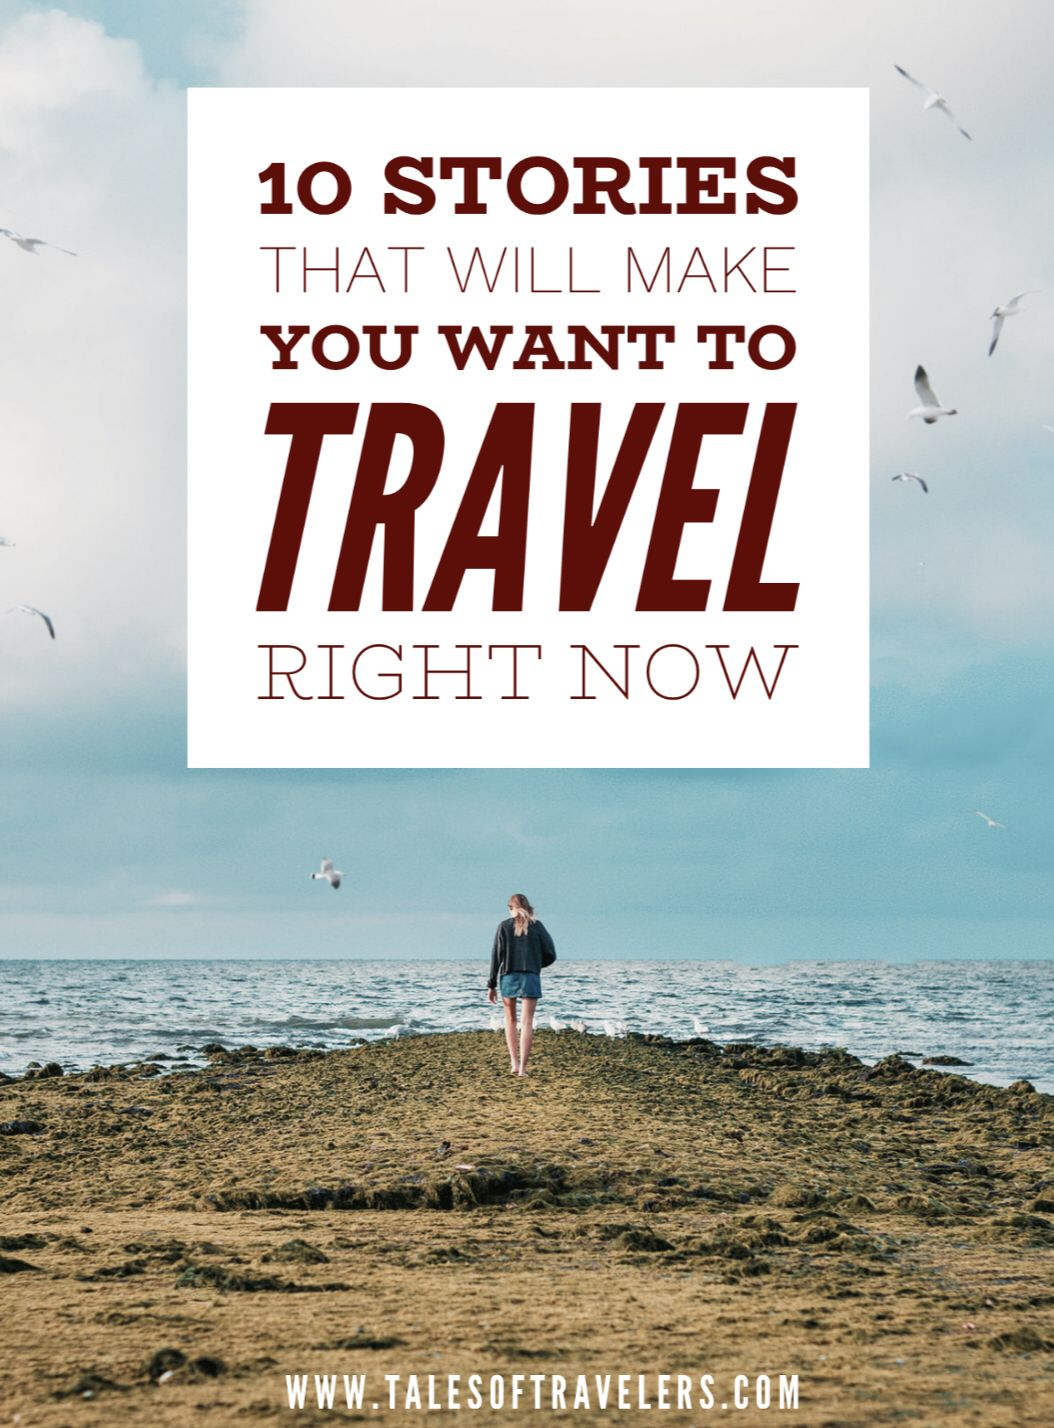 10 Stories That Will Make You Want To Travel Right Now Travel Stories Travel Locations Travel Inspiration